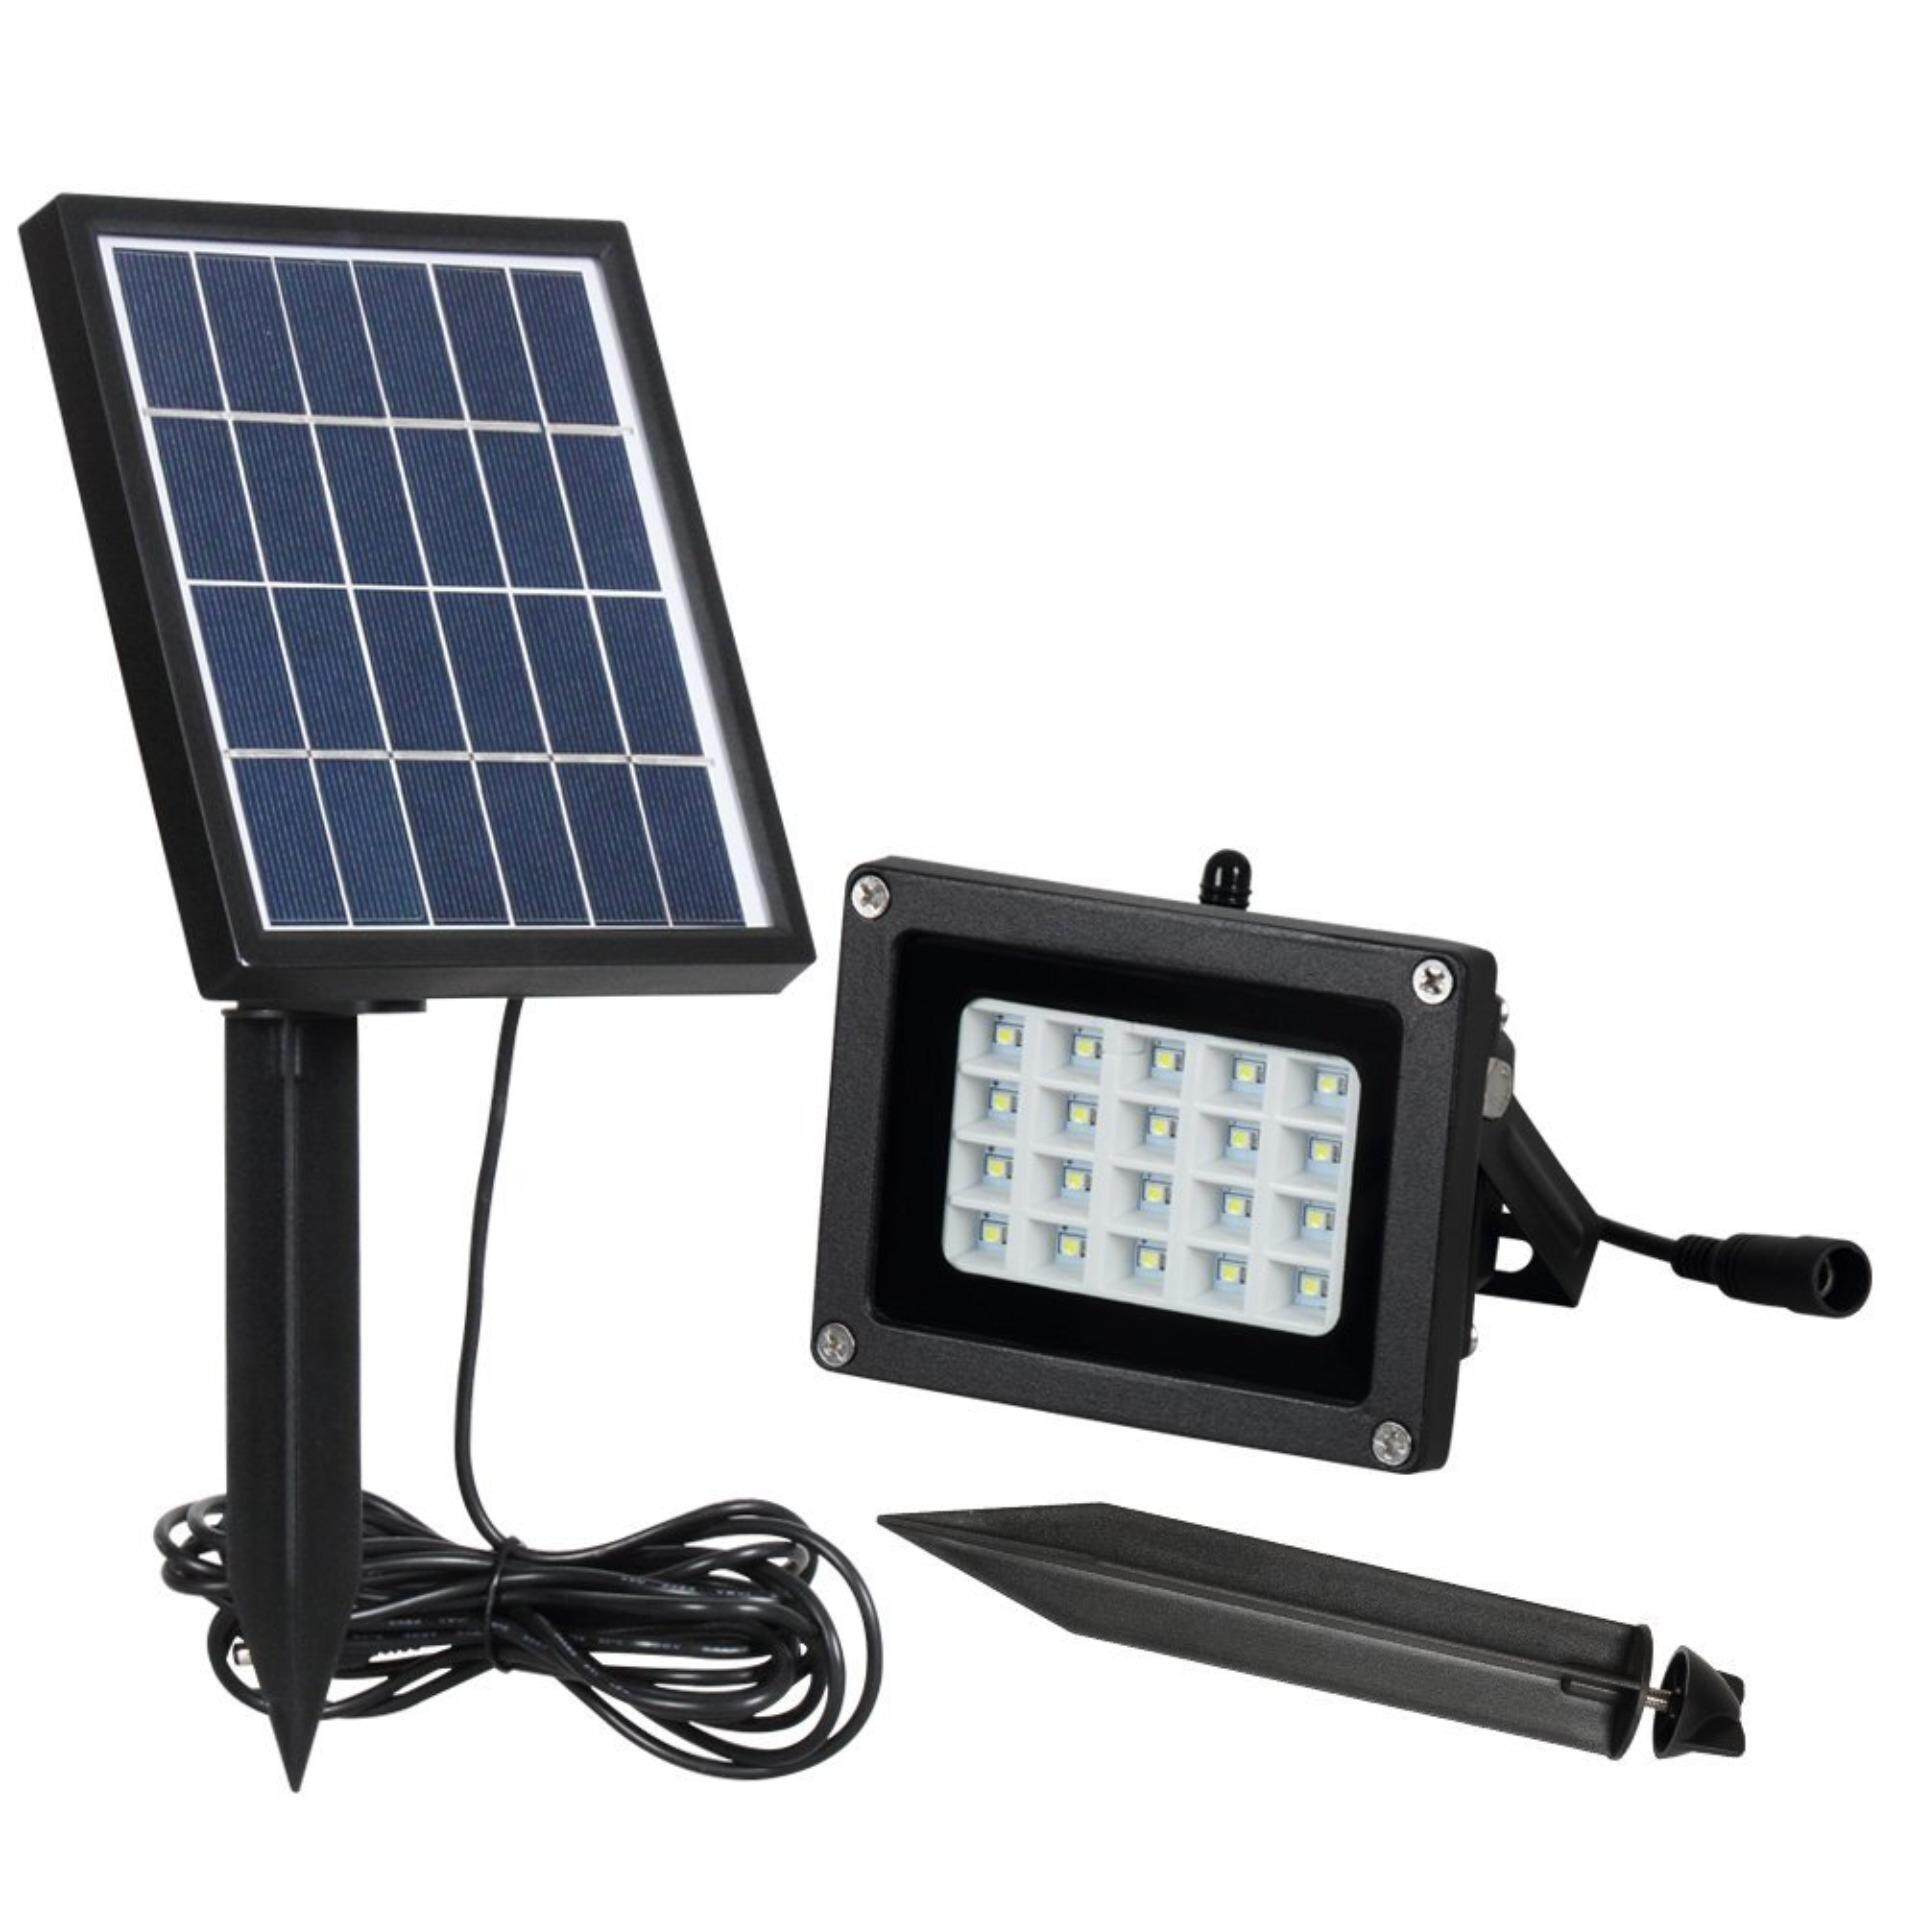 20 Leds Solar Flood Lights Outdoor Waterproof Security Wall Lights,